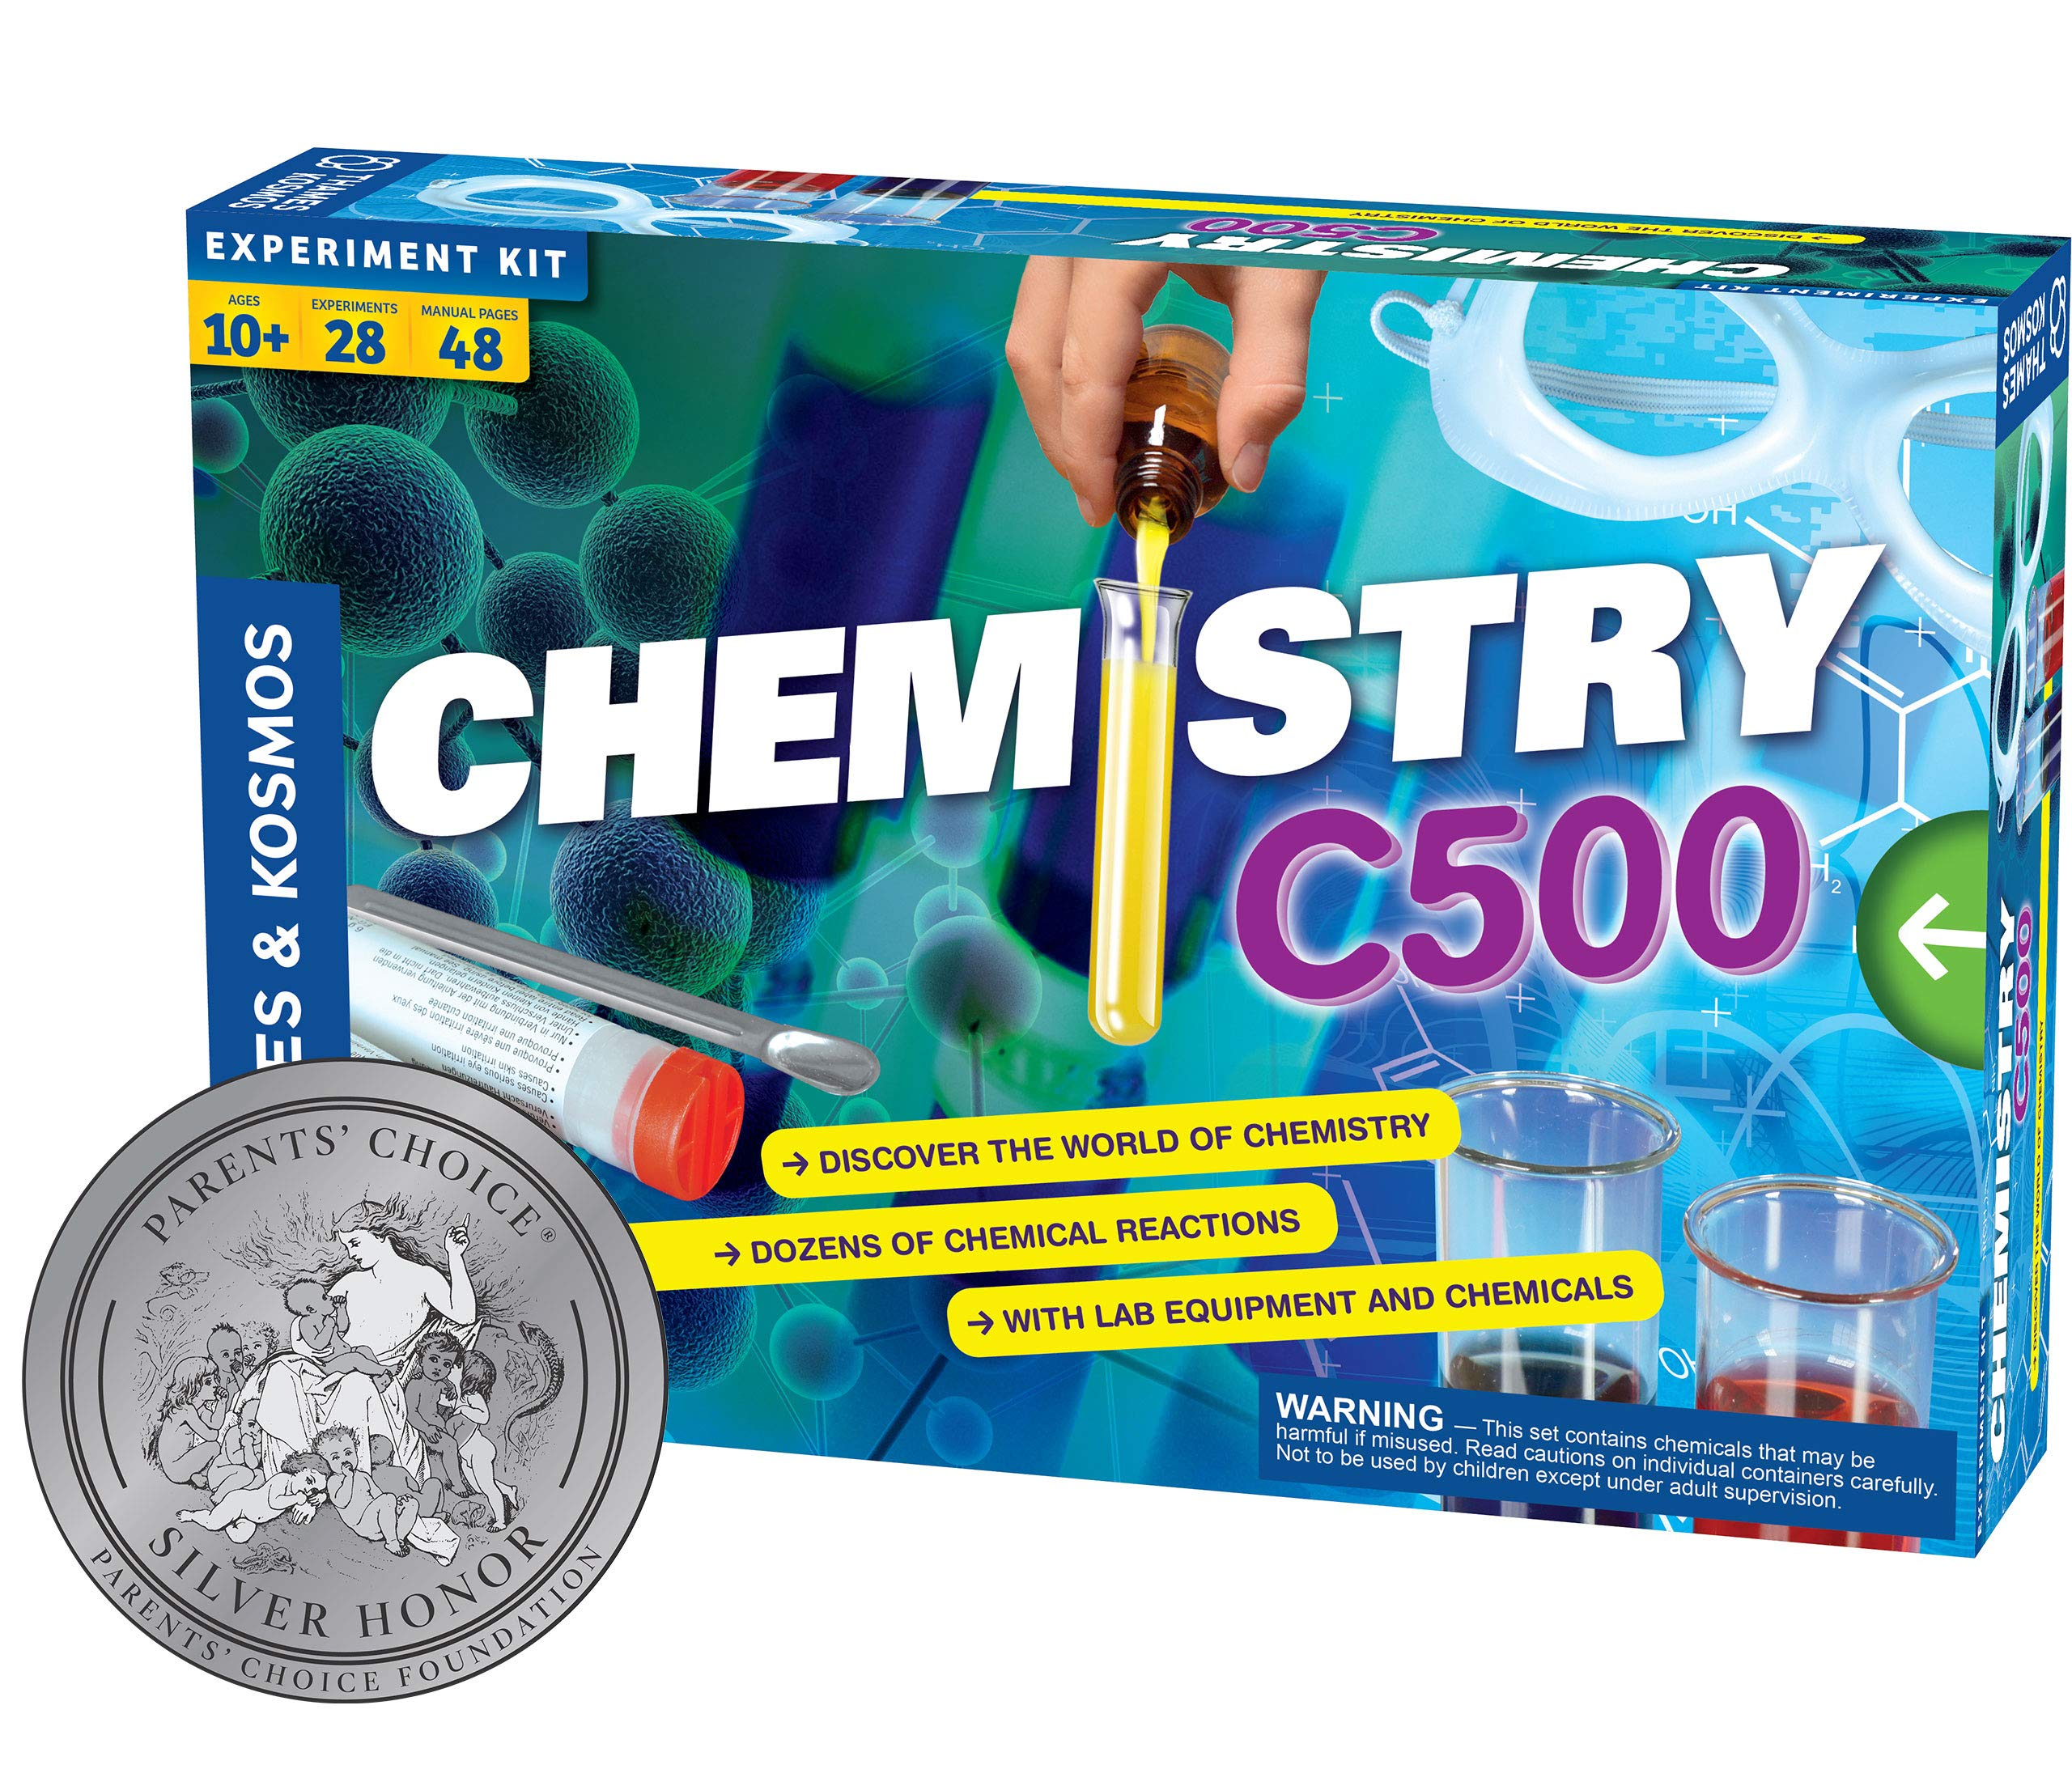 Thames & Kosmos Chemistry Chem C500 Science Kit with 28 Guided Experiments 48 Page Science Guide Parents' Choice Silver Award Winner